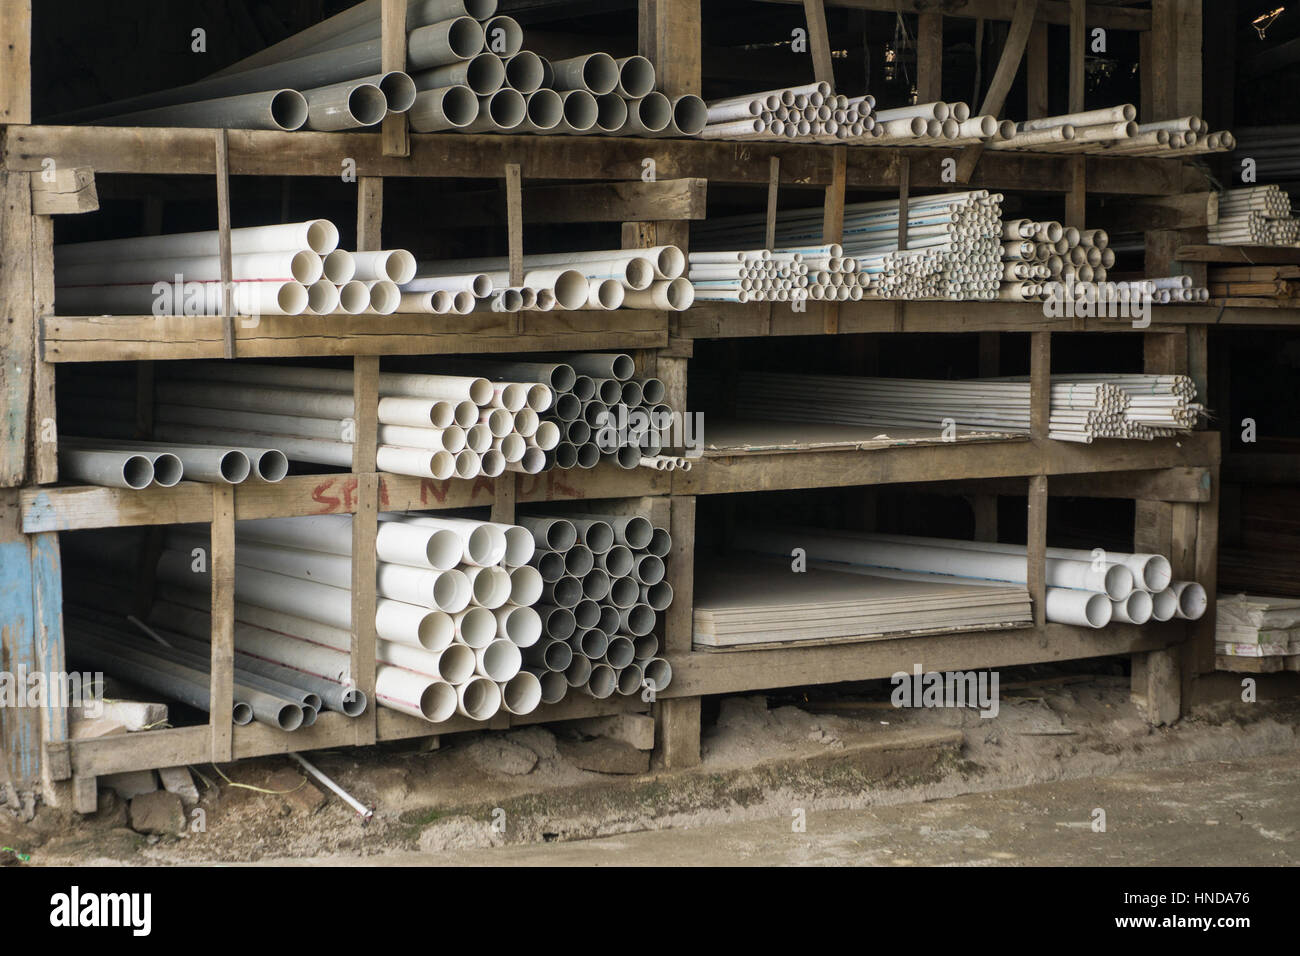 Various kind of pipes displayed on a steel rack inn a material and building store photo taken in Bogor Indonesia - Stock Image